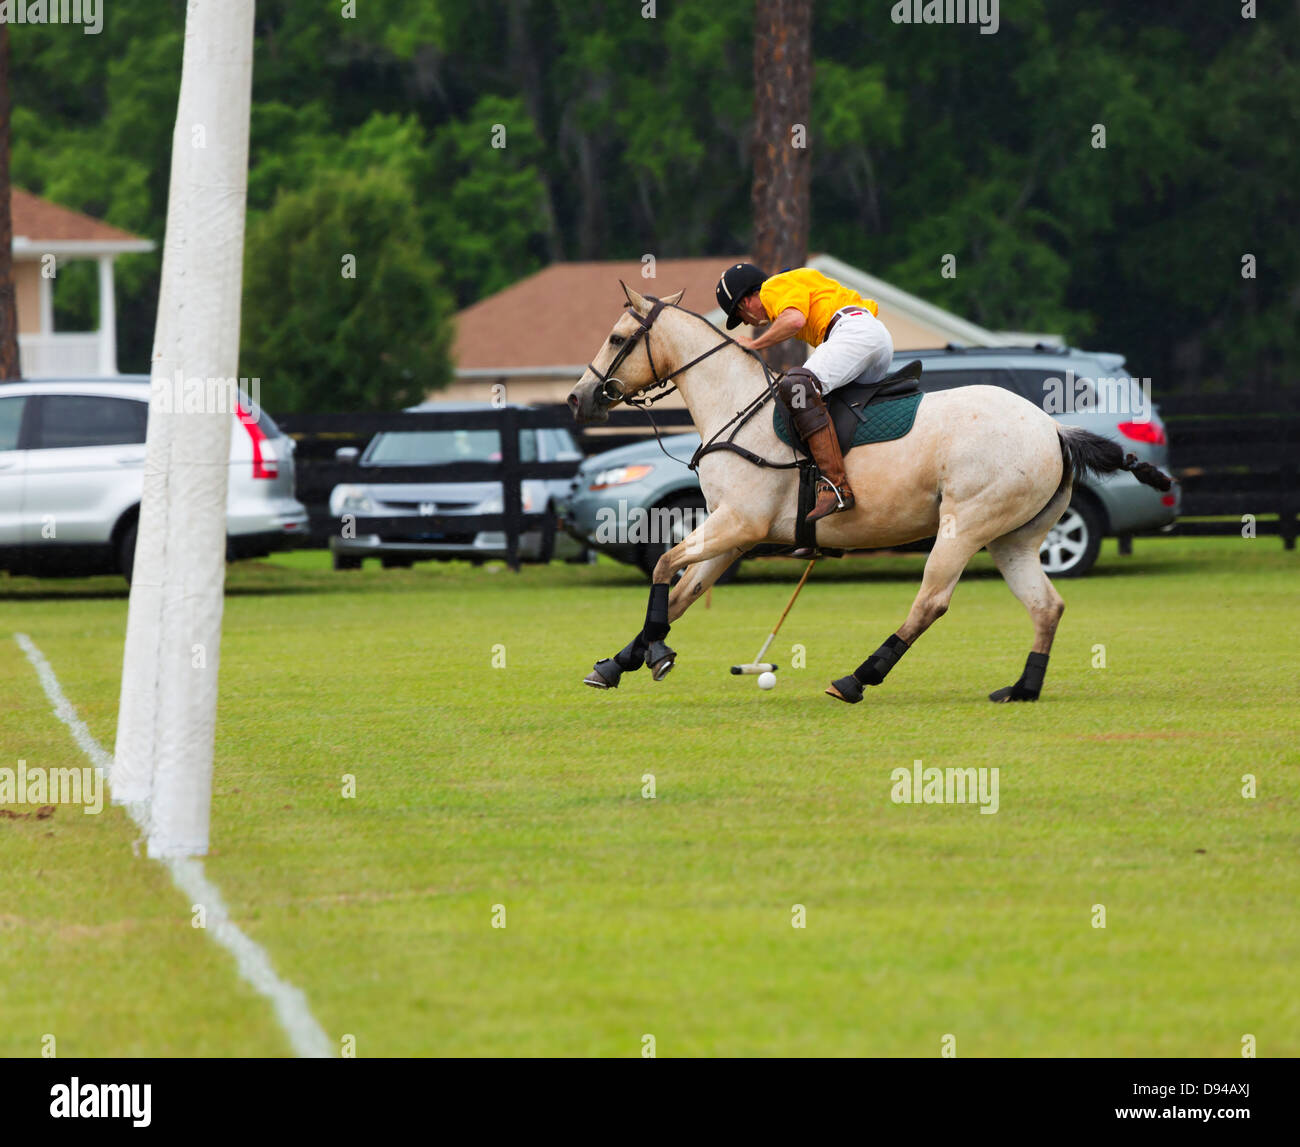 A player leans over and tries to hit the ball with his mallet during a polo match - Stock Image